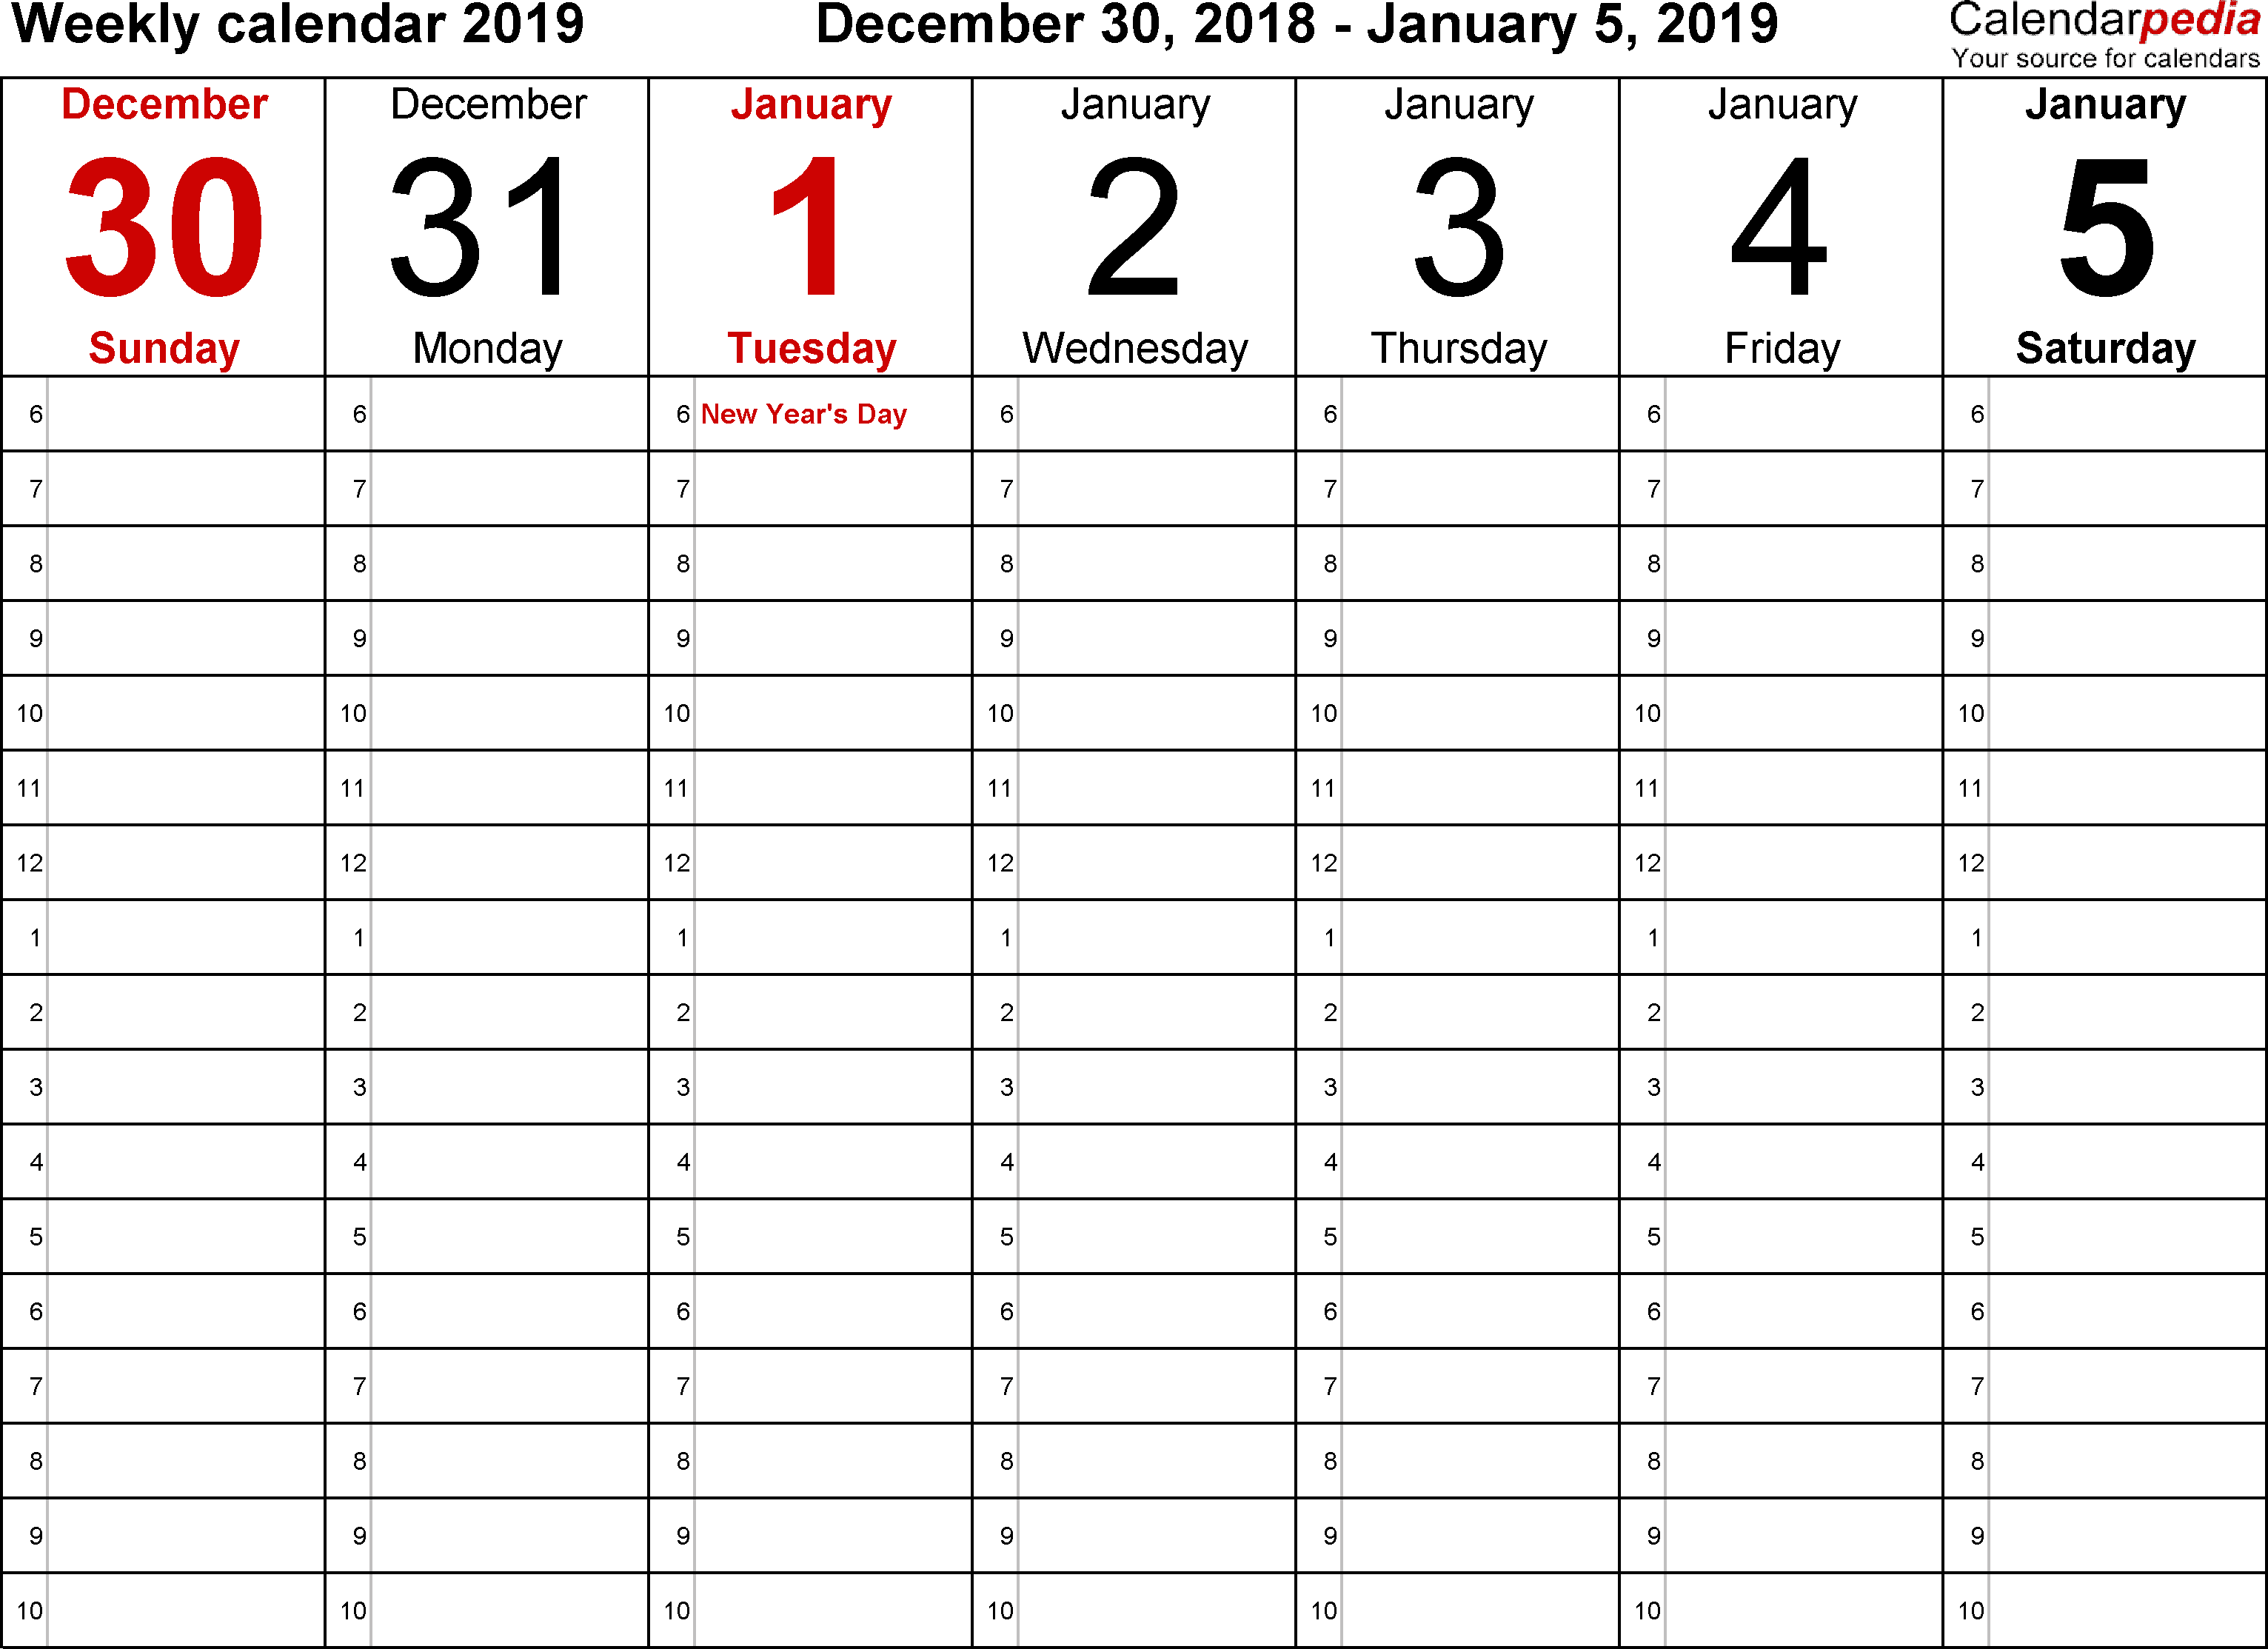 Calendar Days January 2017 To June 30 2019 Weekly calendar 2019 for Word   12 free printable templates